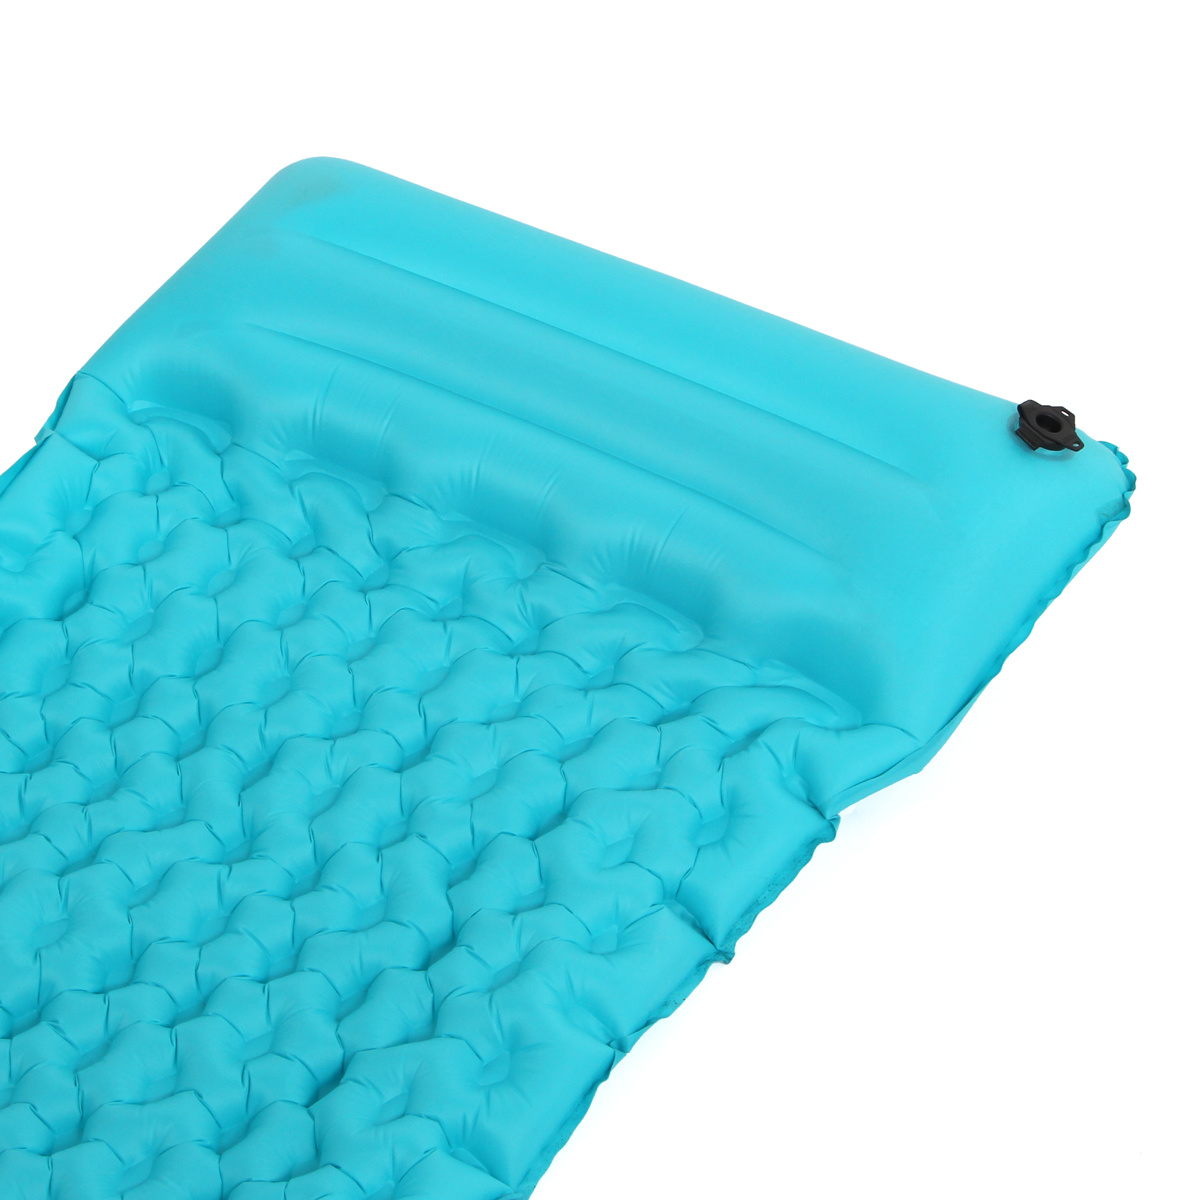 Inflatable Fabric Camping Mattress with Built-in Pillow.